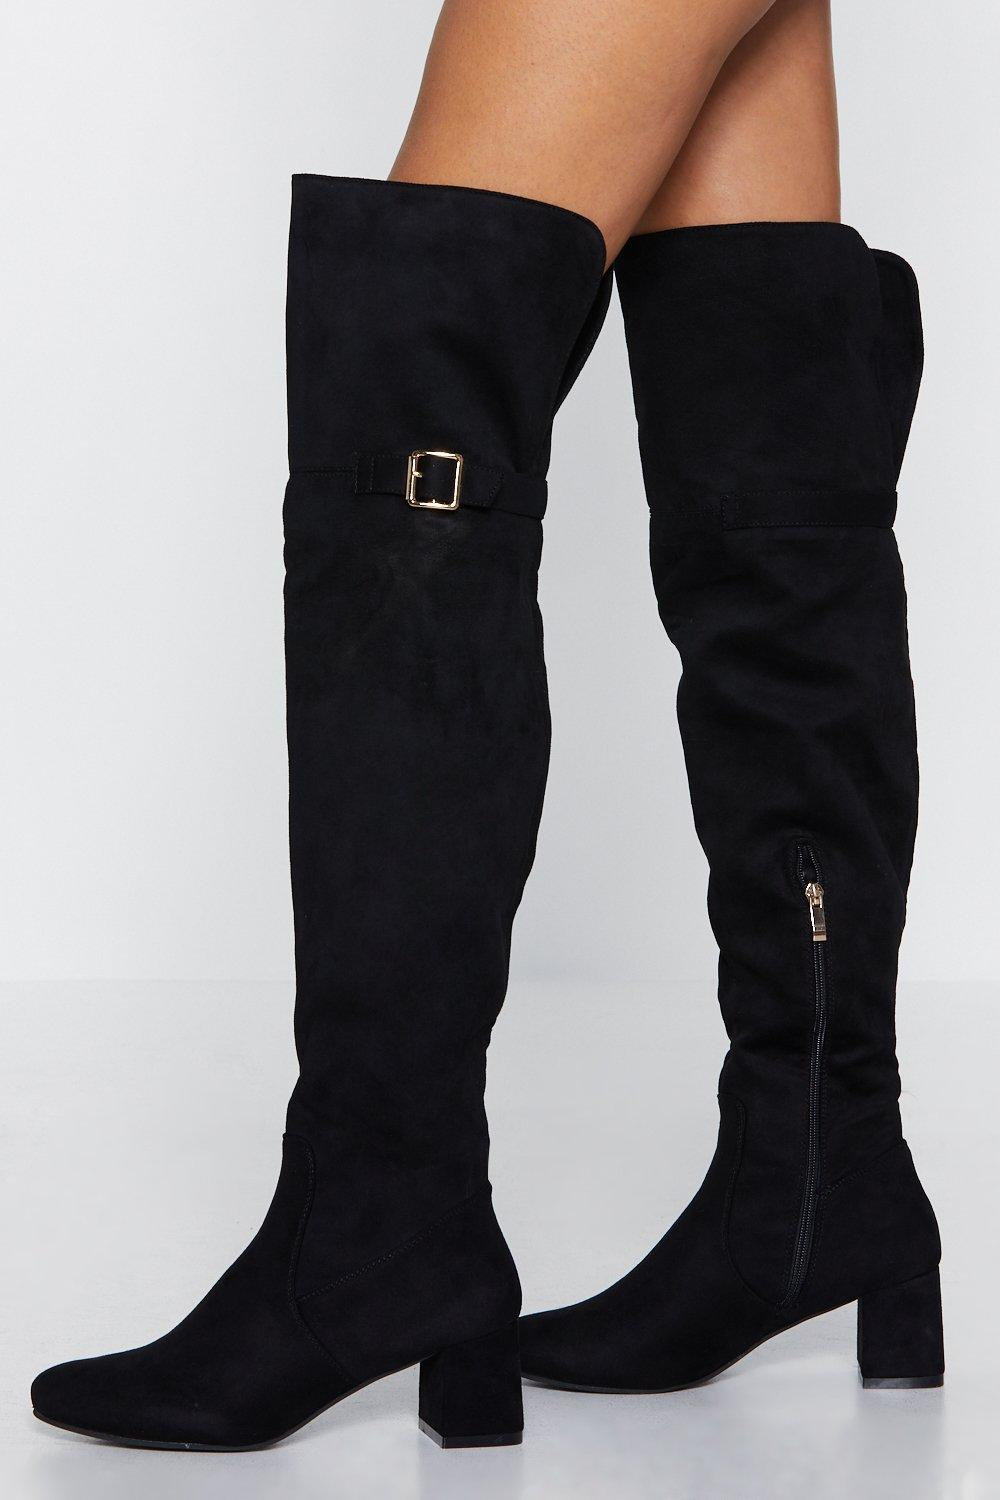 8cc8de72d4 Give Me Love Faux Suede Over-the-Knee Boot   Shop Clothes at Nasty Gal!